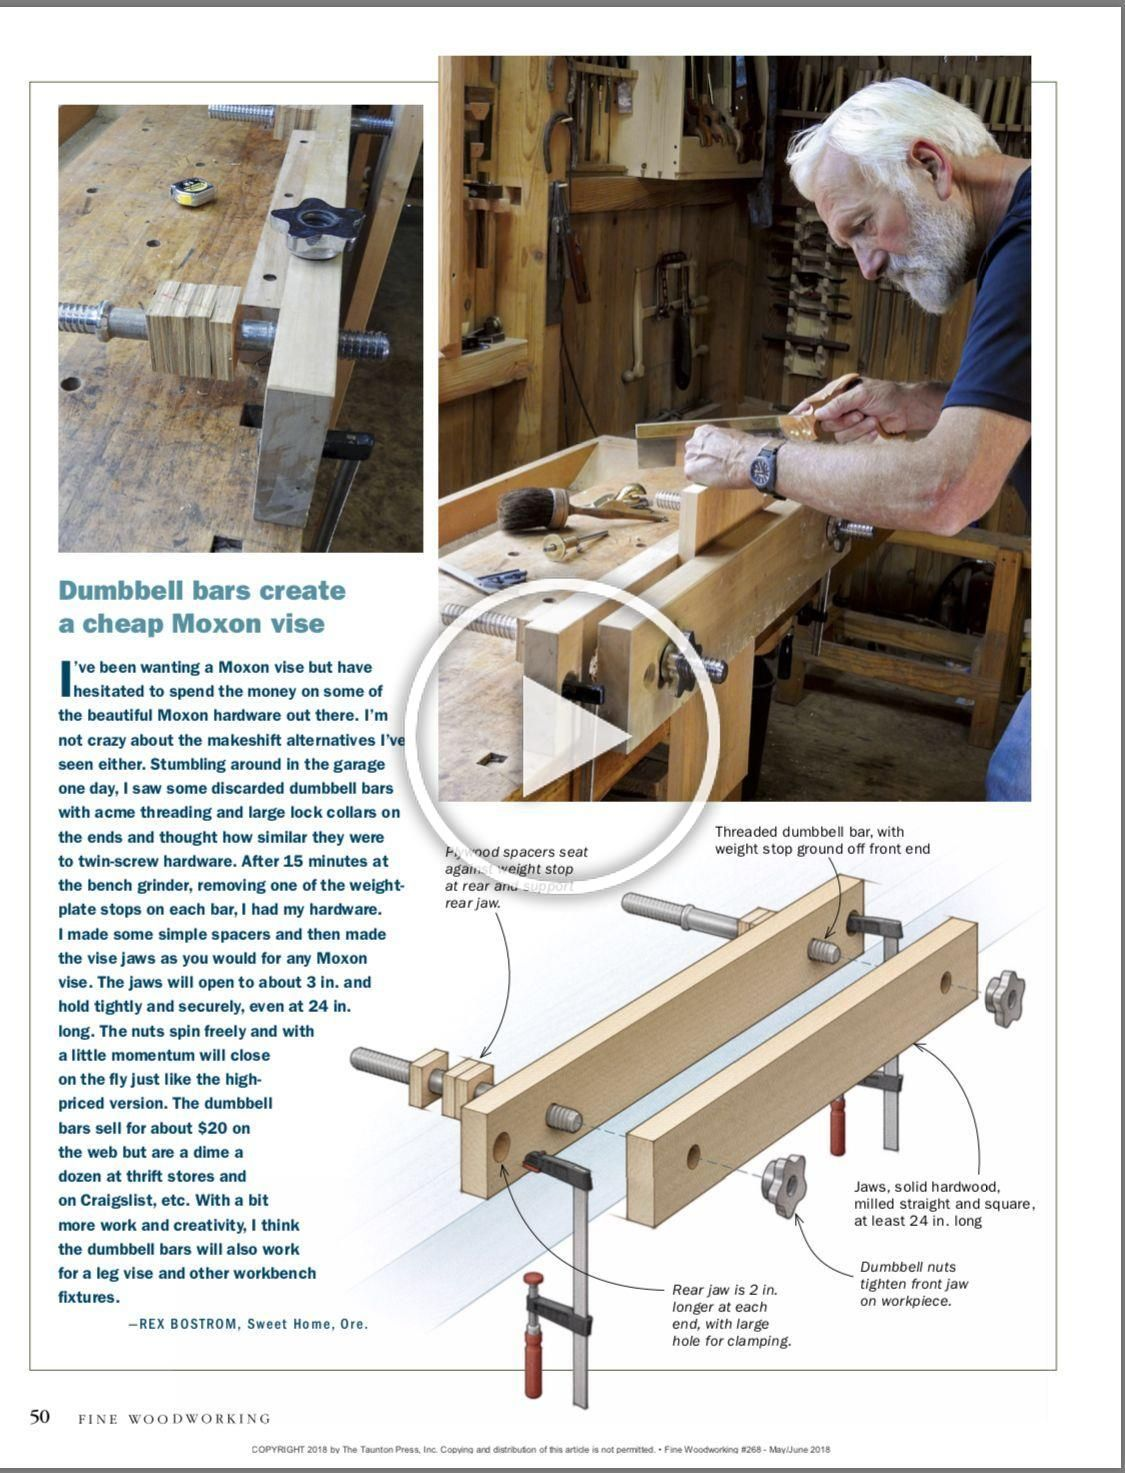 Creative And Inexpensive Cool Tips New Woodworking Tools Videos Woodworking Tools Work In 2020 Woodworking Tool Cabinet Woodworking Tools For Sale Wood Crafting Tools